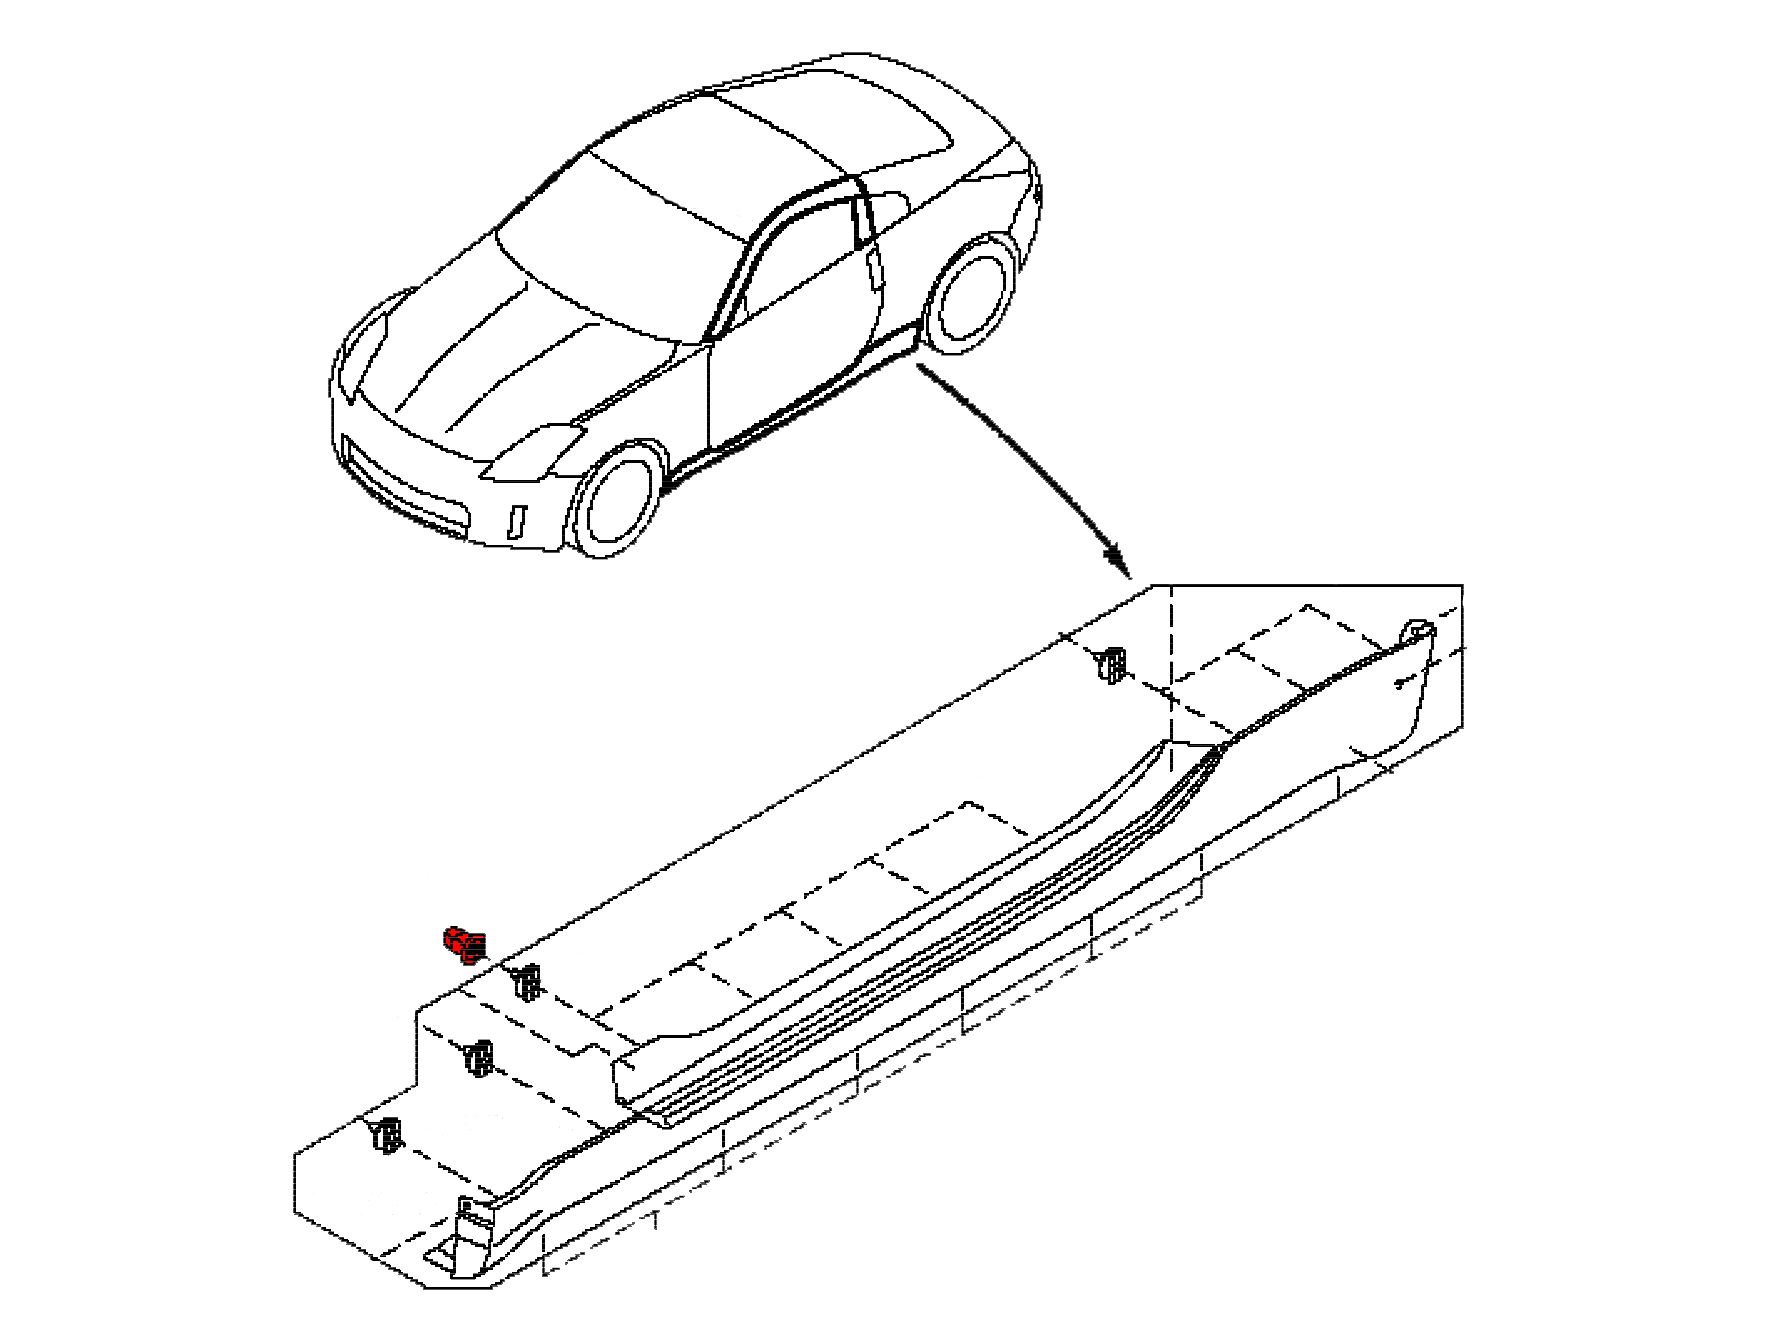 This clip is snapped into the body on your 2003 2008 nissan 350z and allows the side skirt to clip into it holding it to the